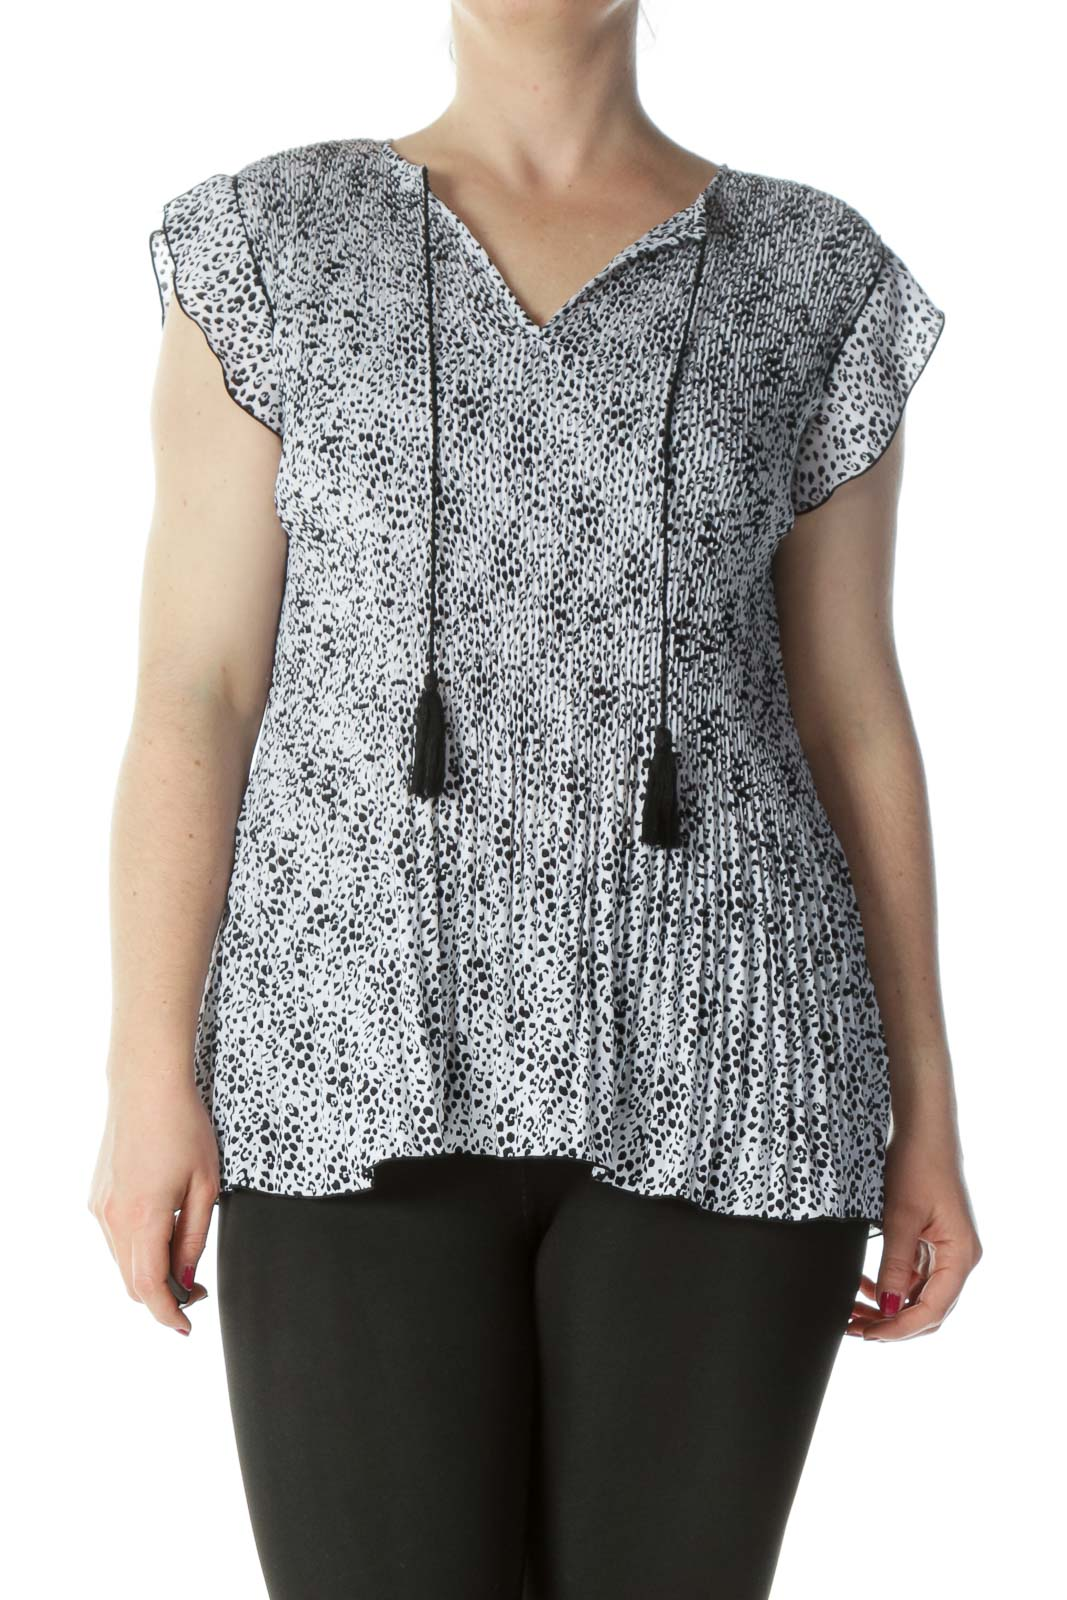 Black White Printed Ruched Short-Sleeve Flared Top Front